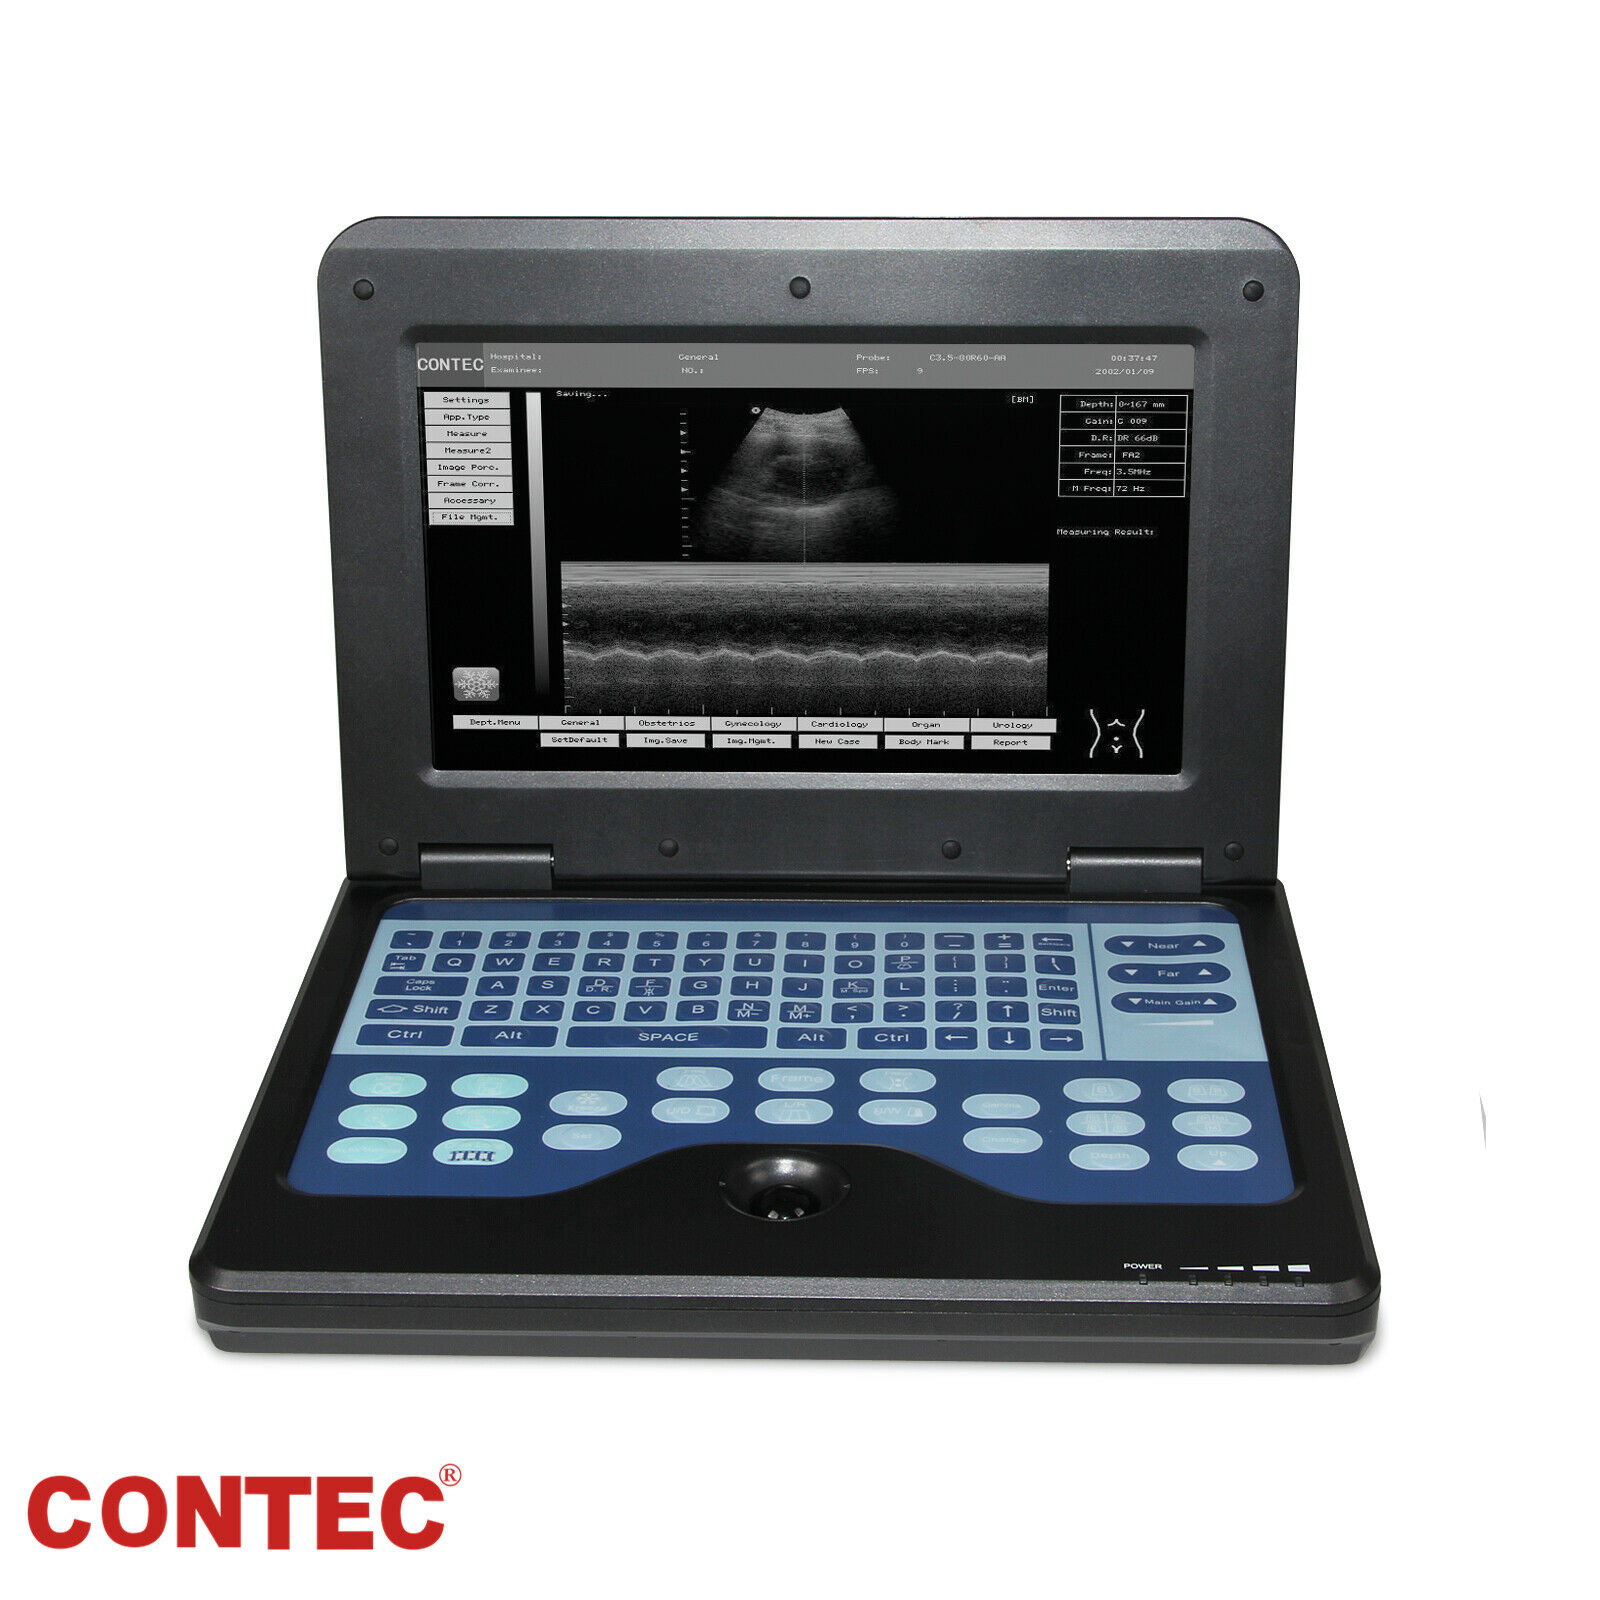 NEW NEW PORTABLE LAPTOP MACHINE DIGITAL ULTRASOUND SCANNER, OPTIONAL 4 PROBES,CE FDA